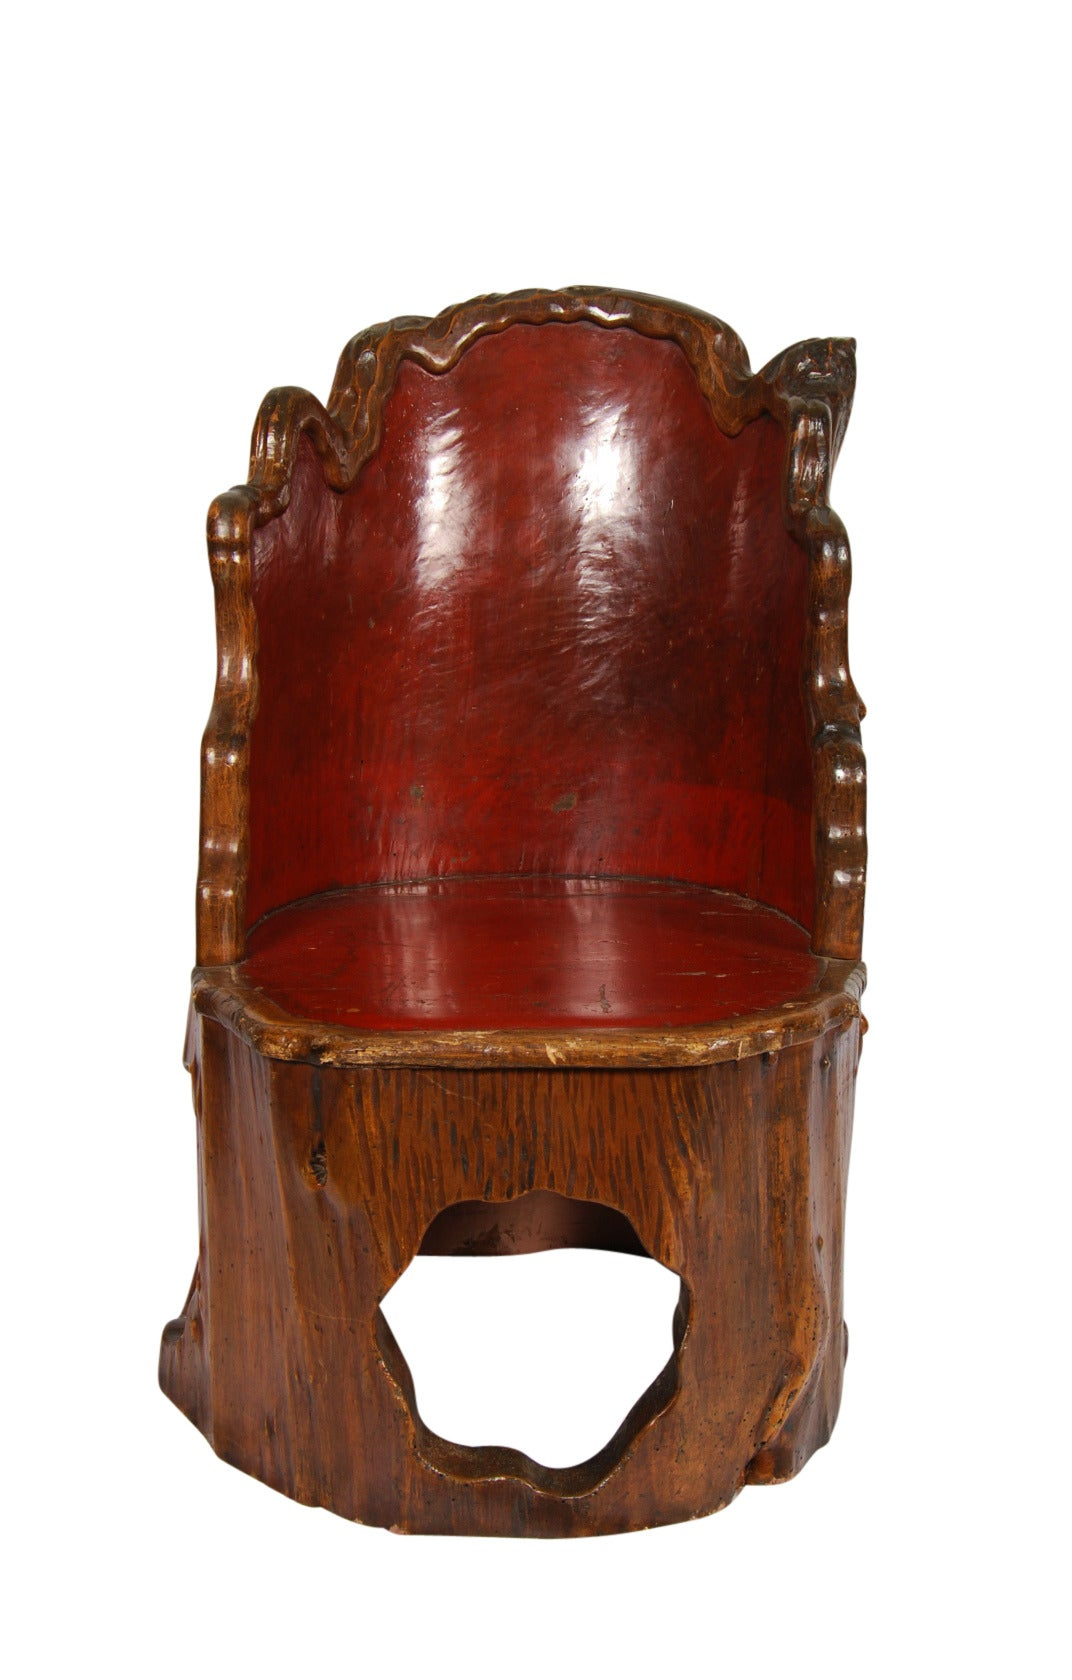 Japanese Chair Antique Japanese Folk Art Chair At 1stdibs